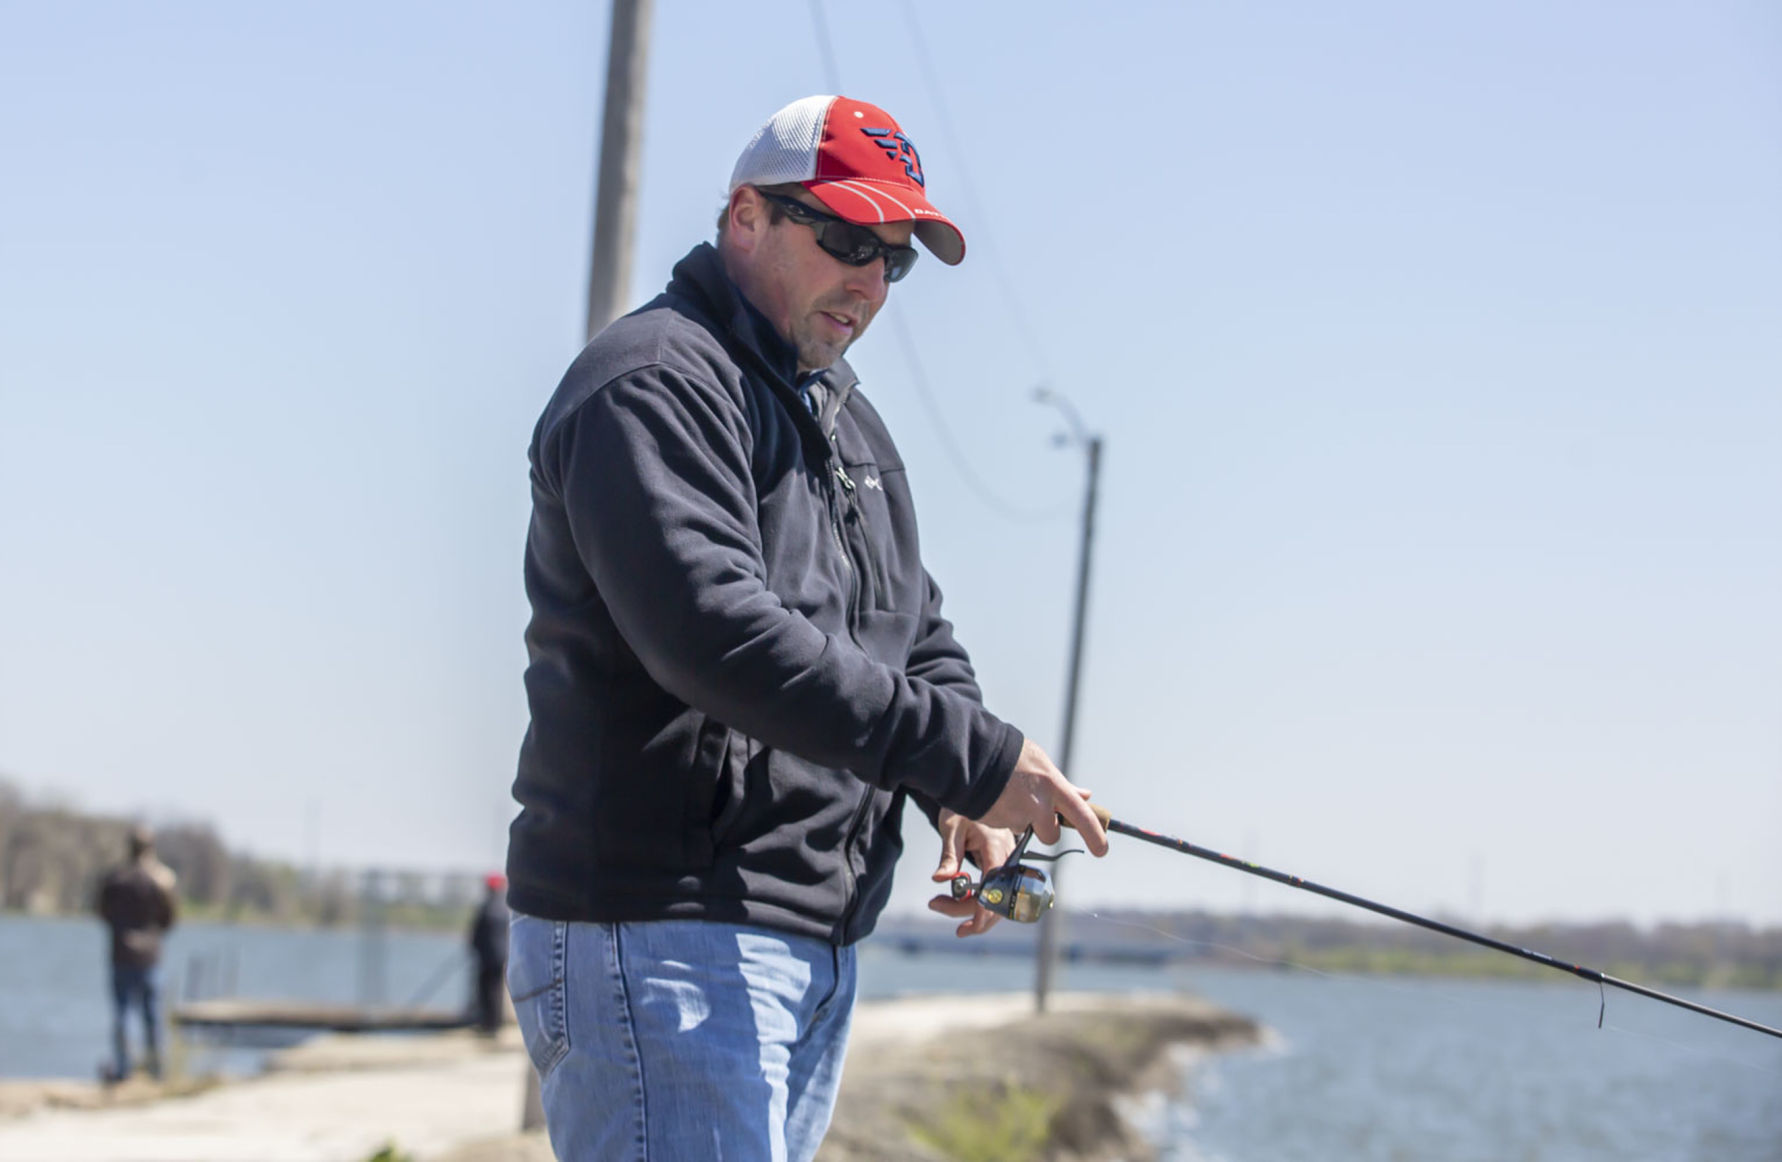 On Lake Decatur, fishing and social distancing meet | Local